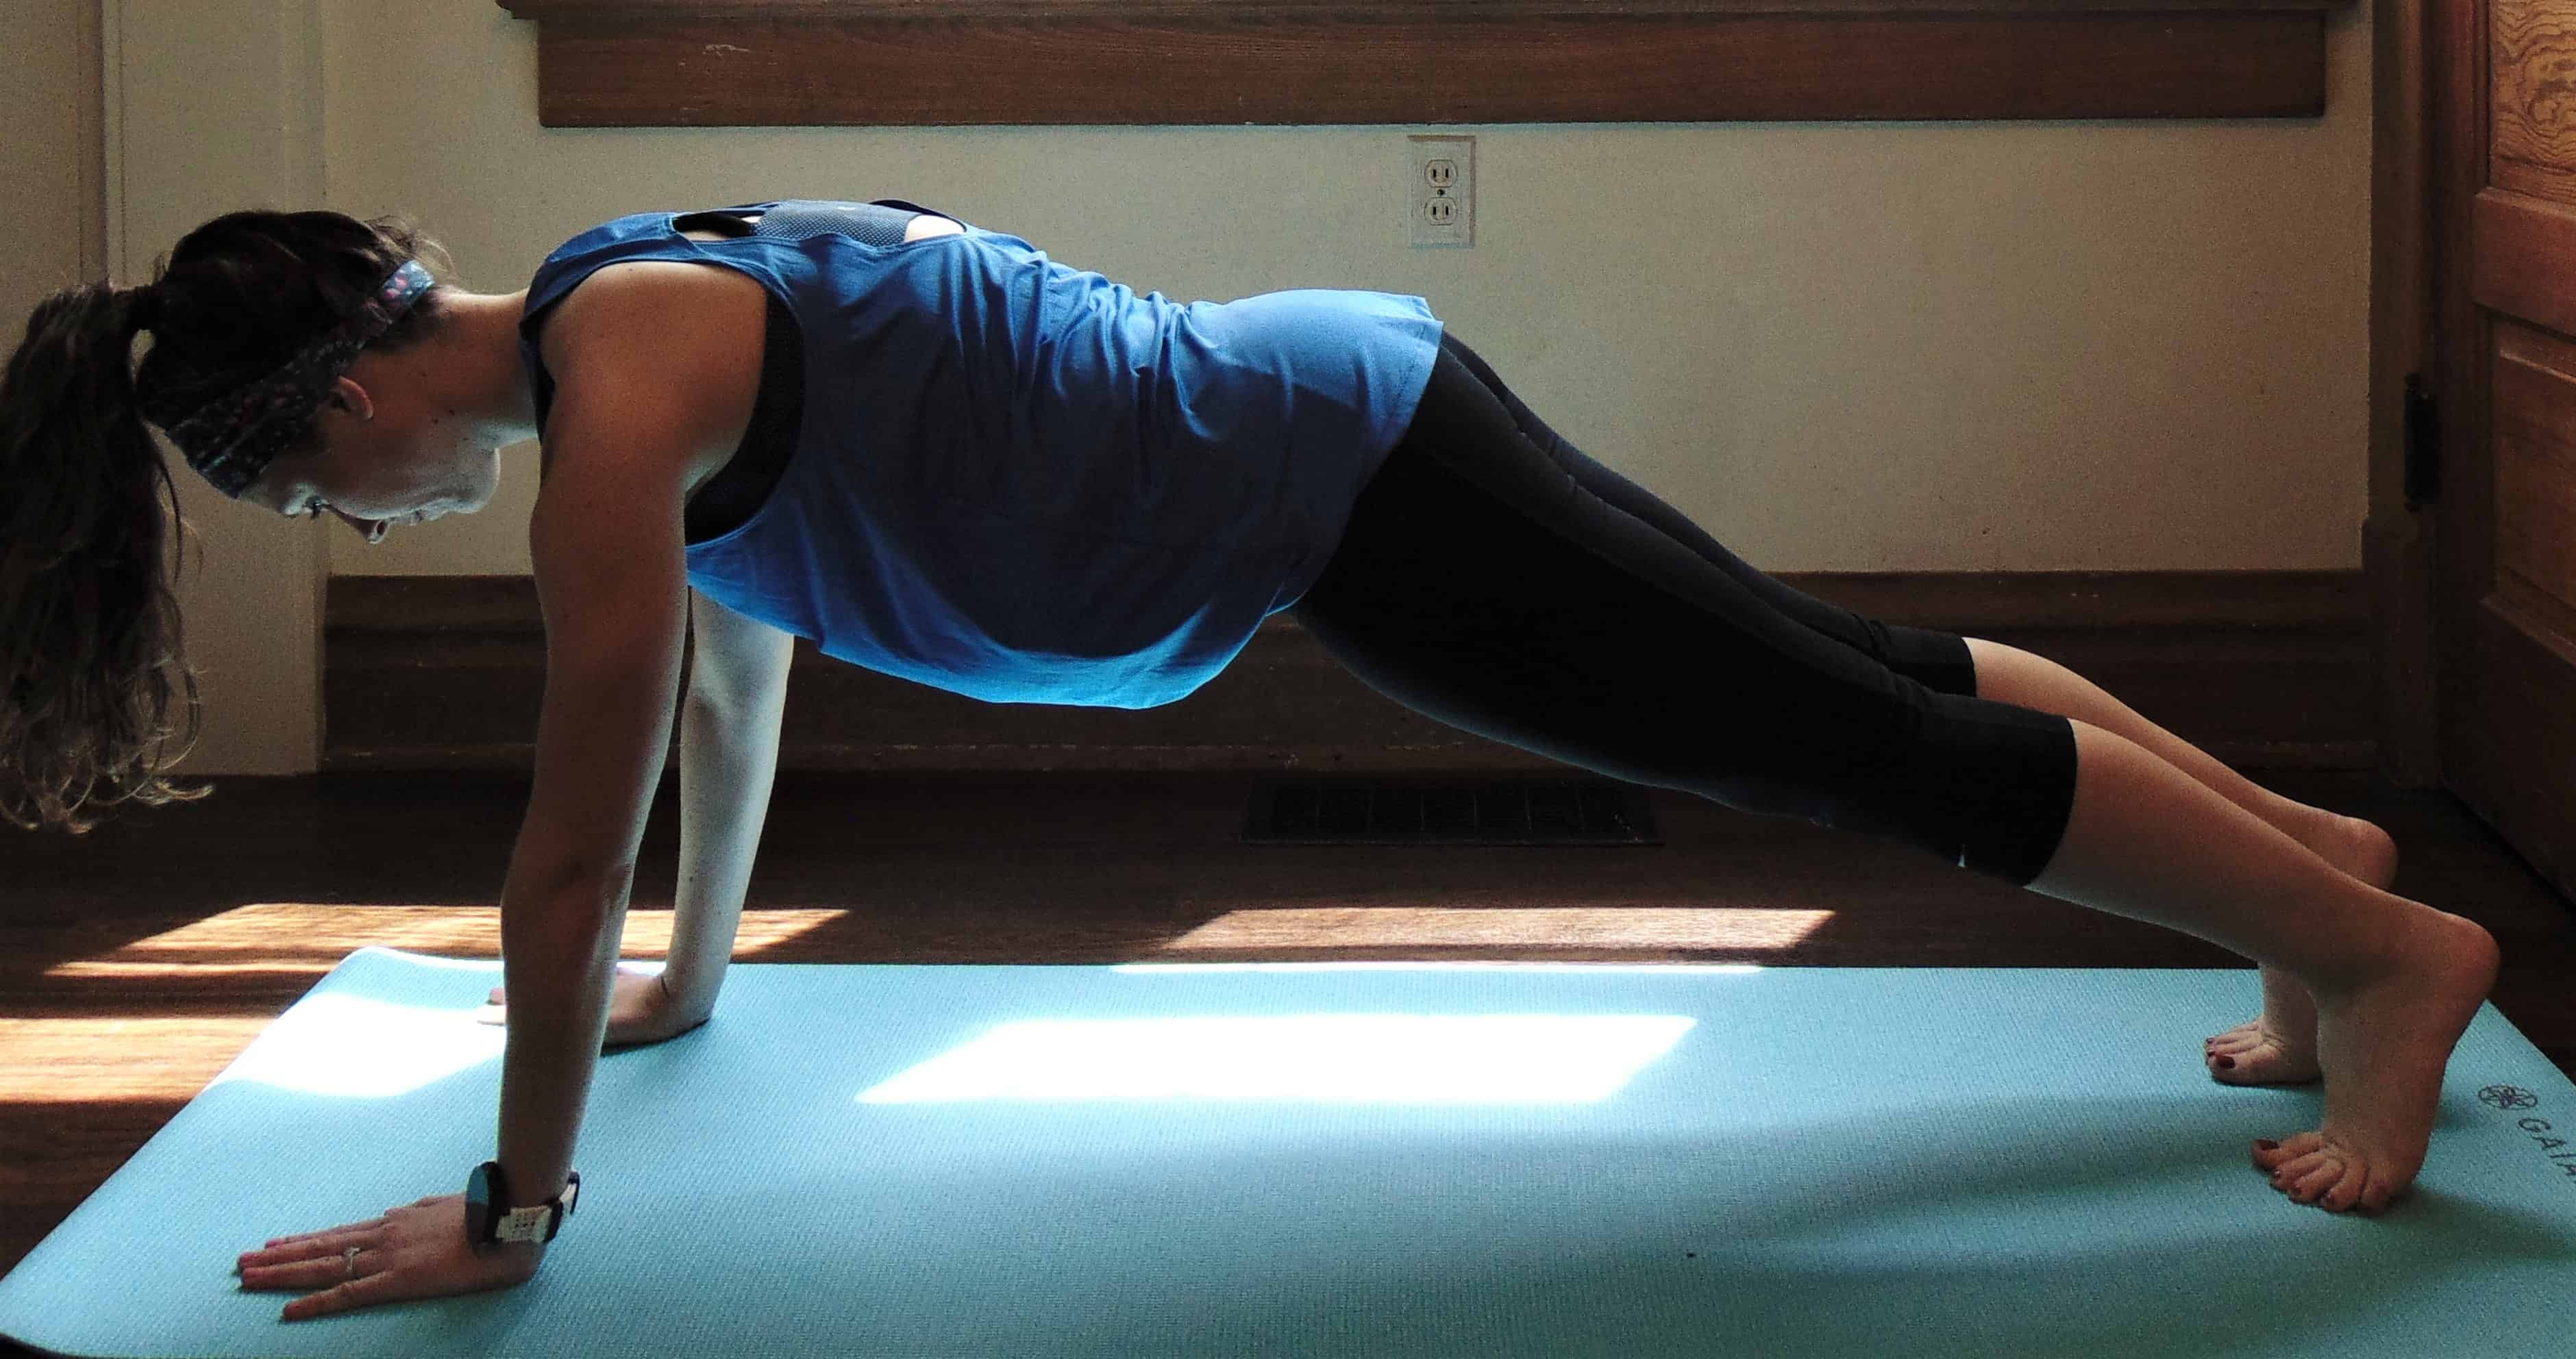 This 30 day push up challenge is the ultimate plan for beginners looking to get better at push ups and build upper body strength. The 14 push up variations start easy and gradually increase in difficulty, leaving you with strong, toned arms after just 30 days.